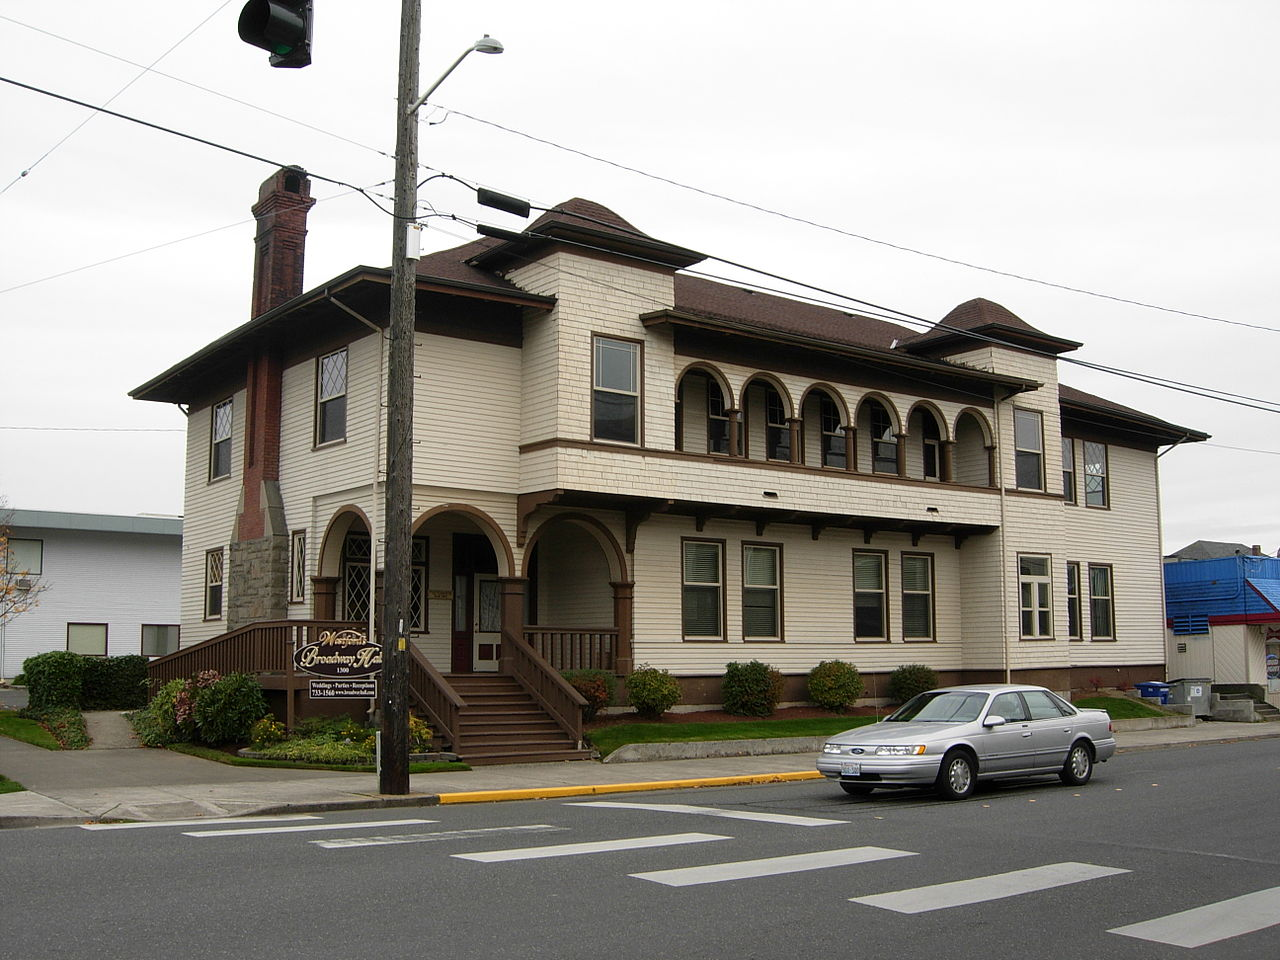 The former Aftermath Clubhouse was built in 1905, becoming what is considered the first clubhouse for women in the state of Washington.